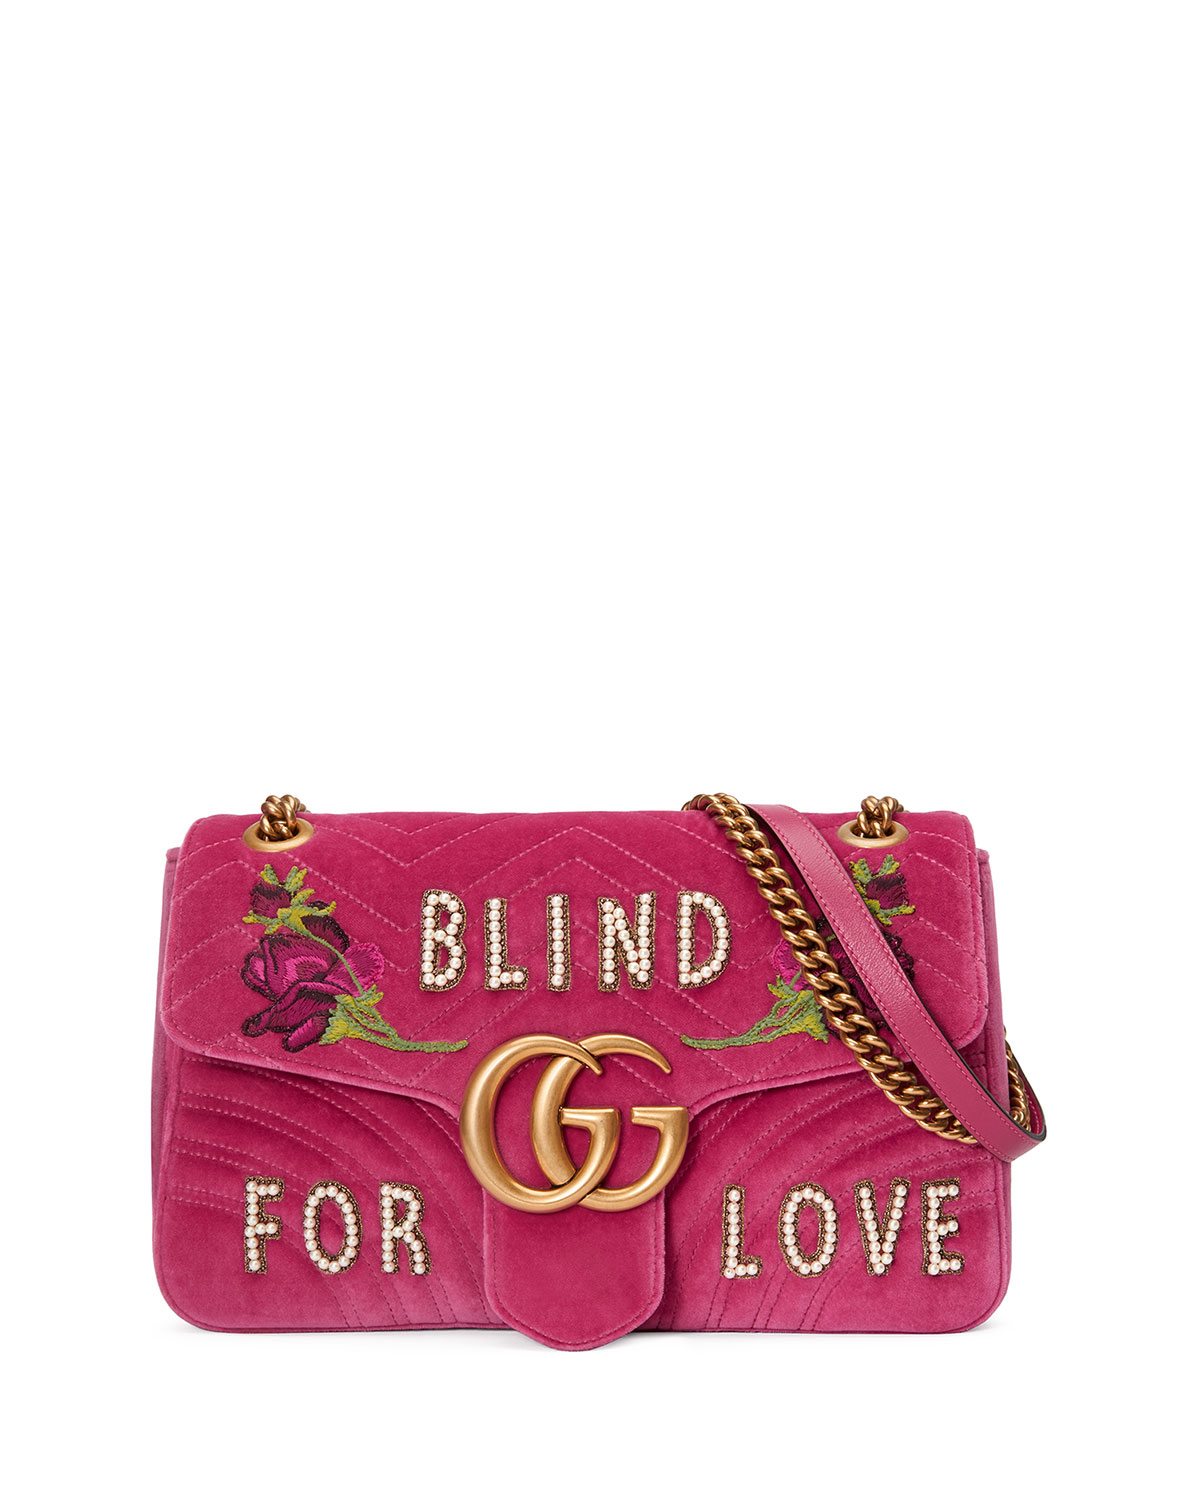 a1393b2b18a8 Gucci GG Marmont Medium Embroidered Velvet Blind for Love Shoulder Bag